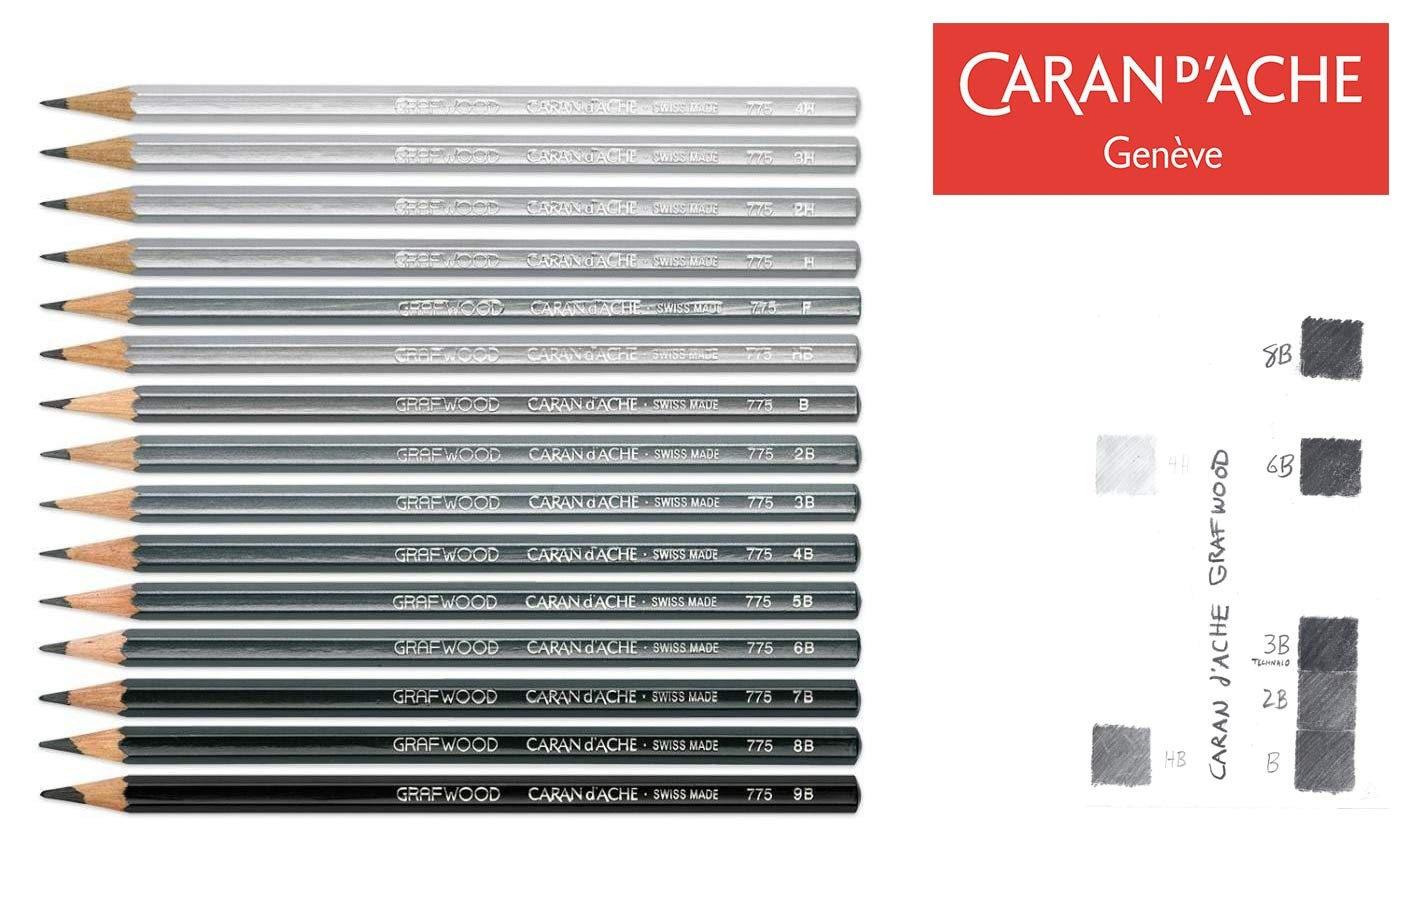 Caran d'Ache - GRAFWOOD graphite sketch pencils - lot of 3 or 6 - choose 4H - 9B - Made in Switzerland - finest graphite pencils in the world!-Lot of 3-4H